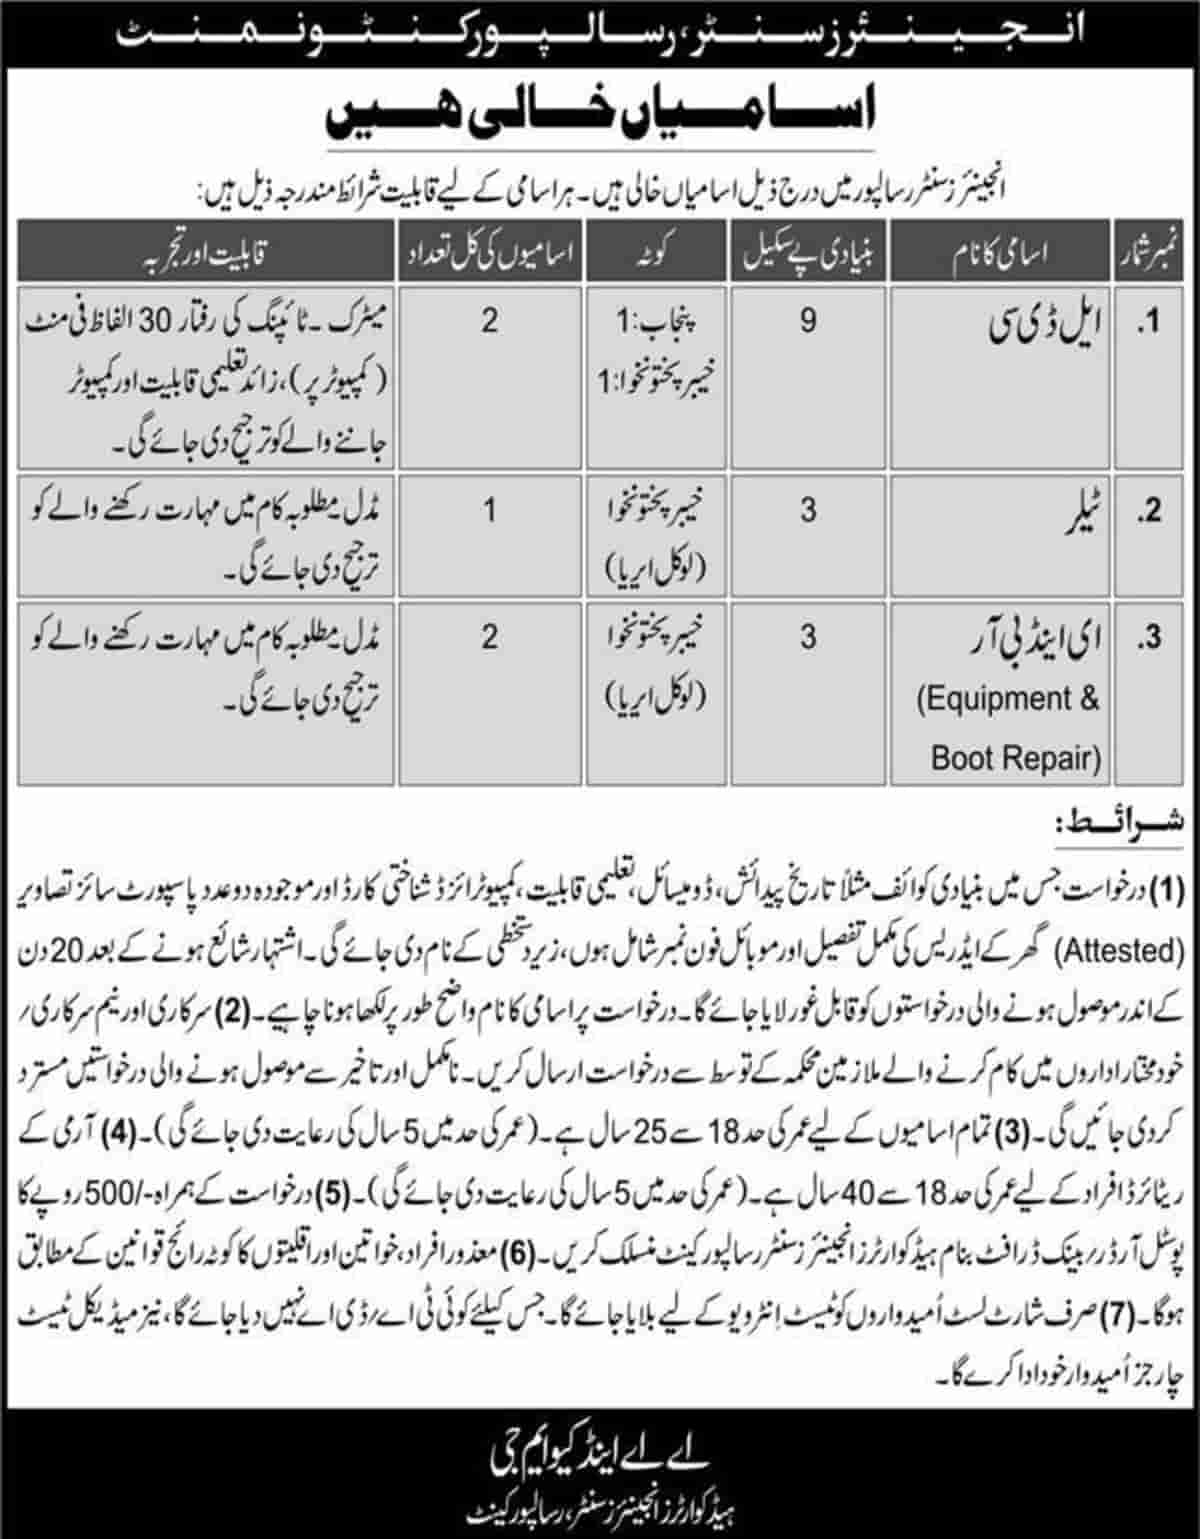 Pakistan Army Engineers Center Risalpur Cantt Jobs 2020 Application Form Latest